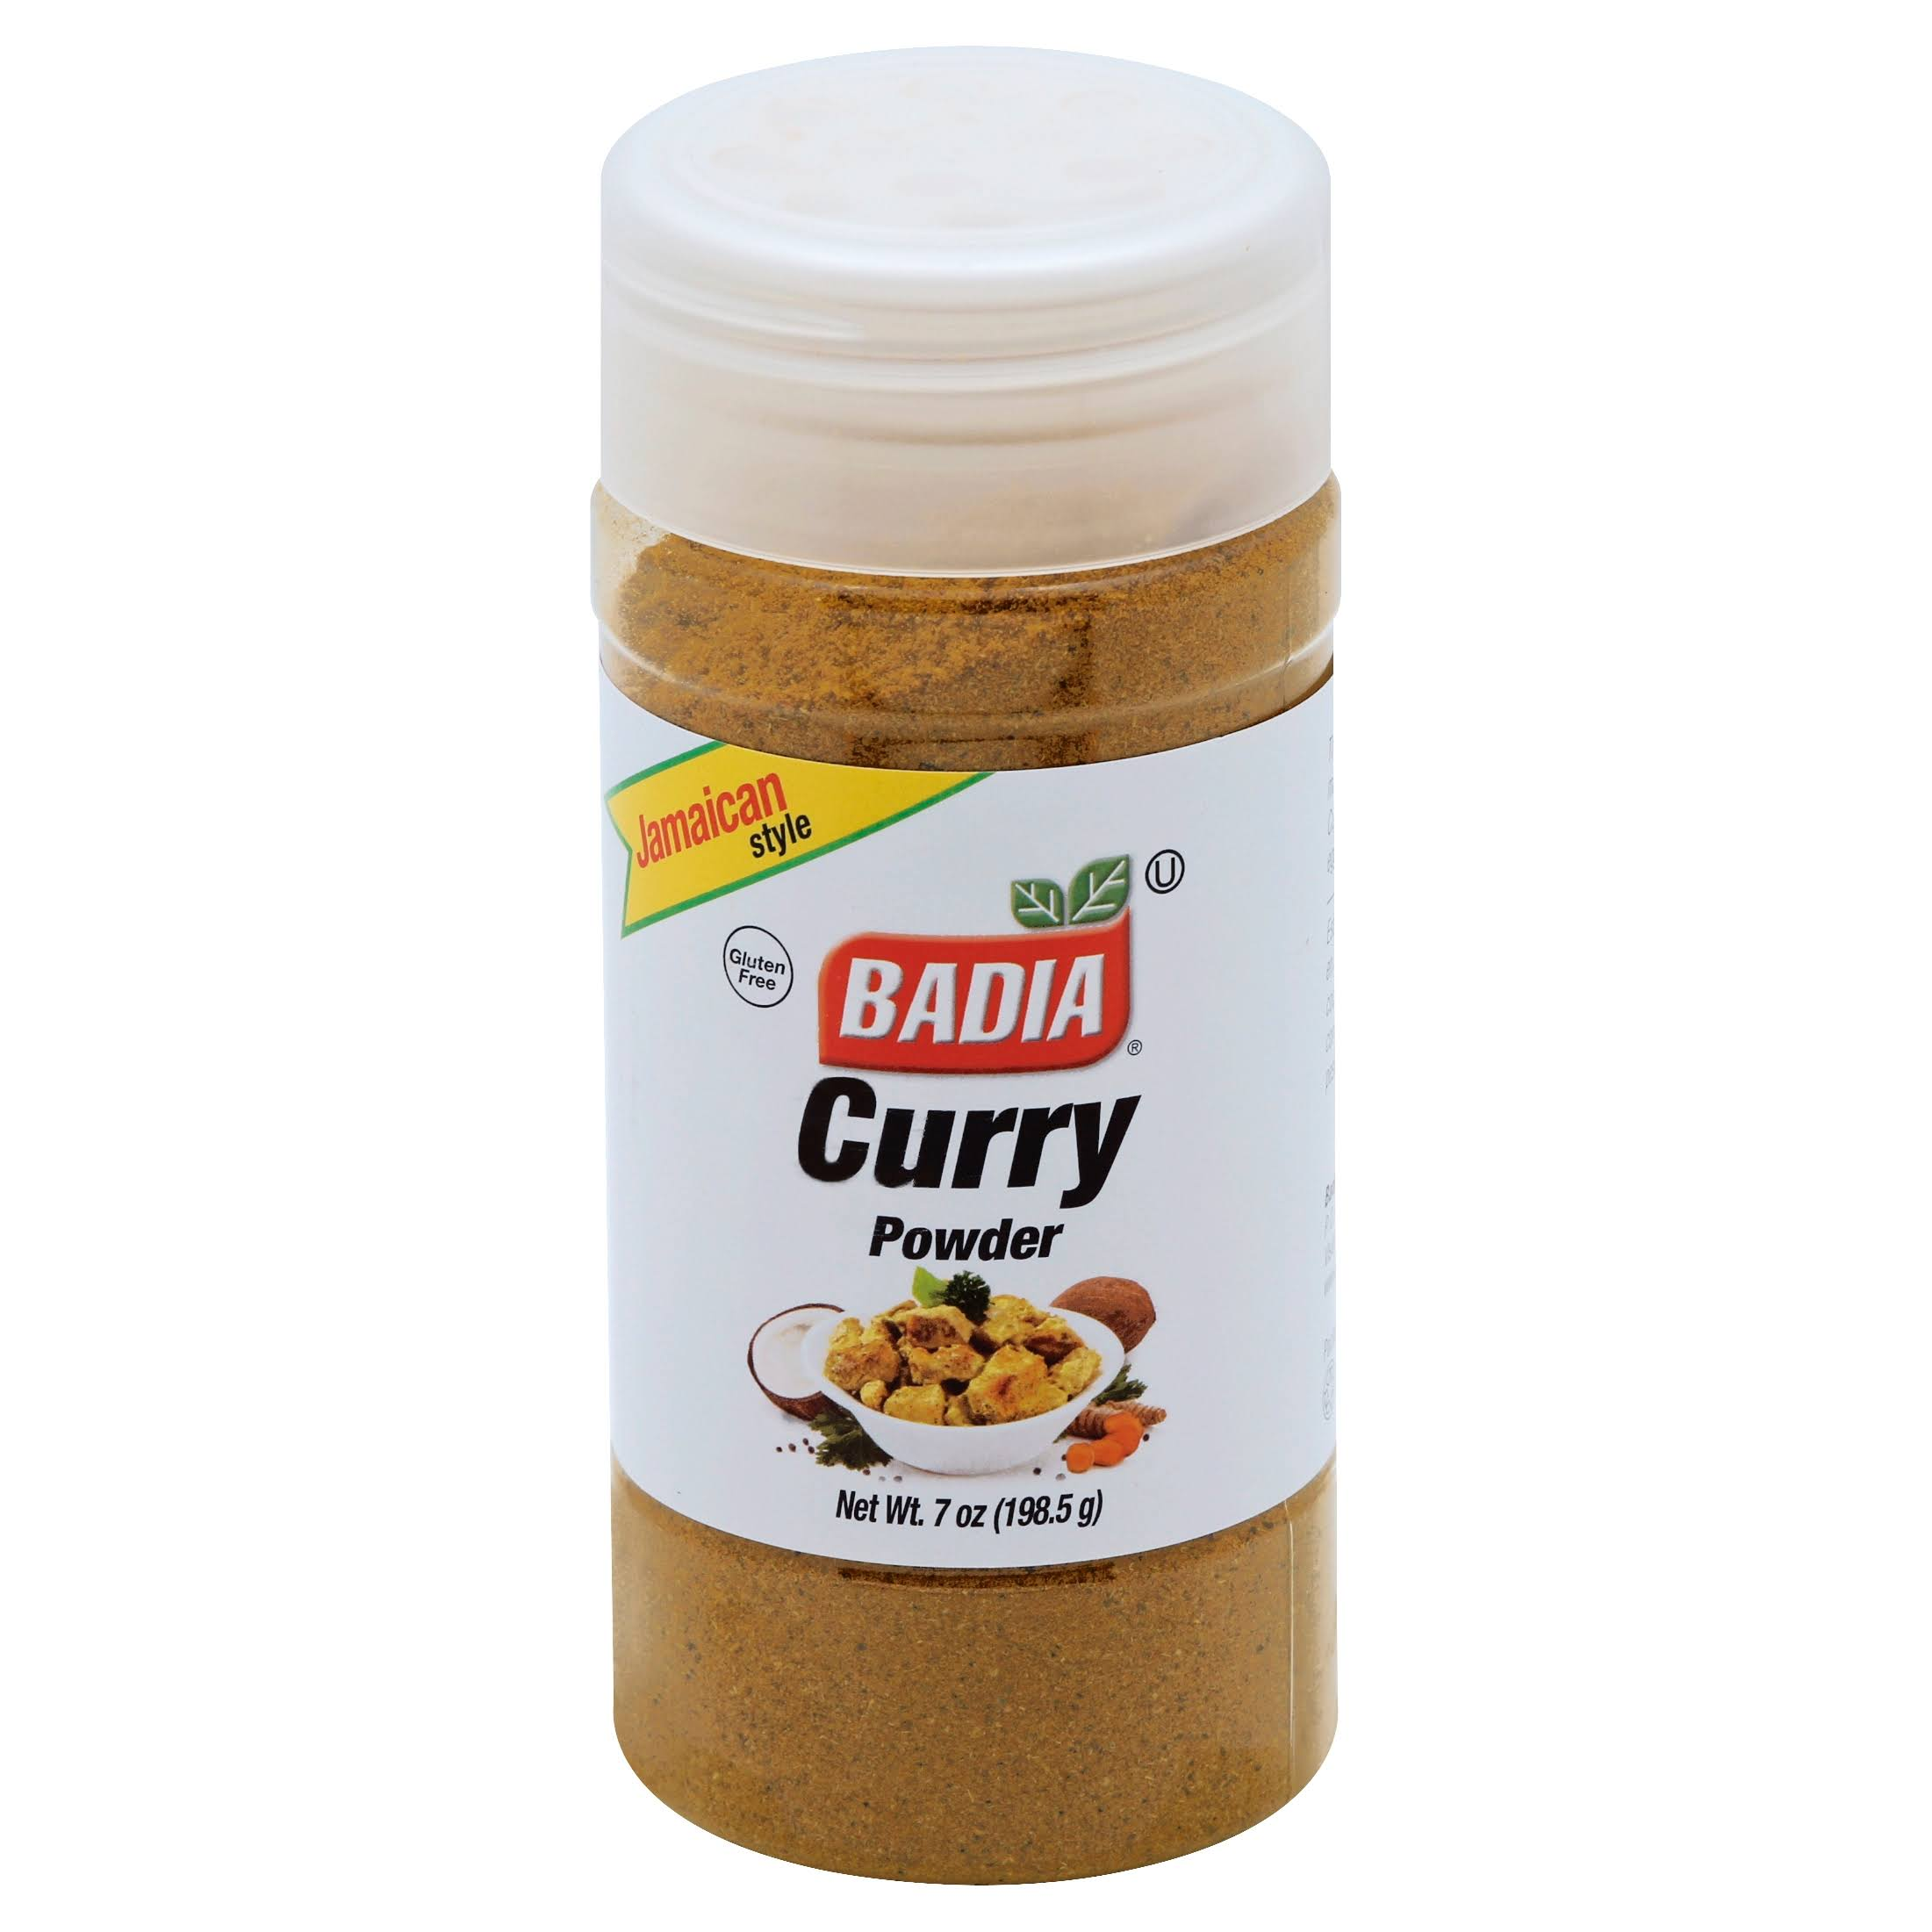 Badia Curry Powder - 7oz